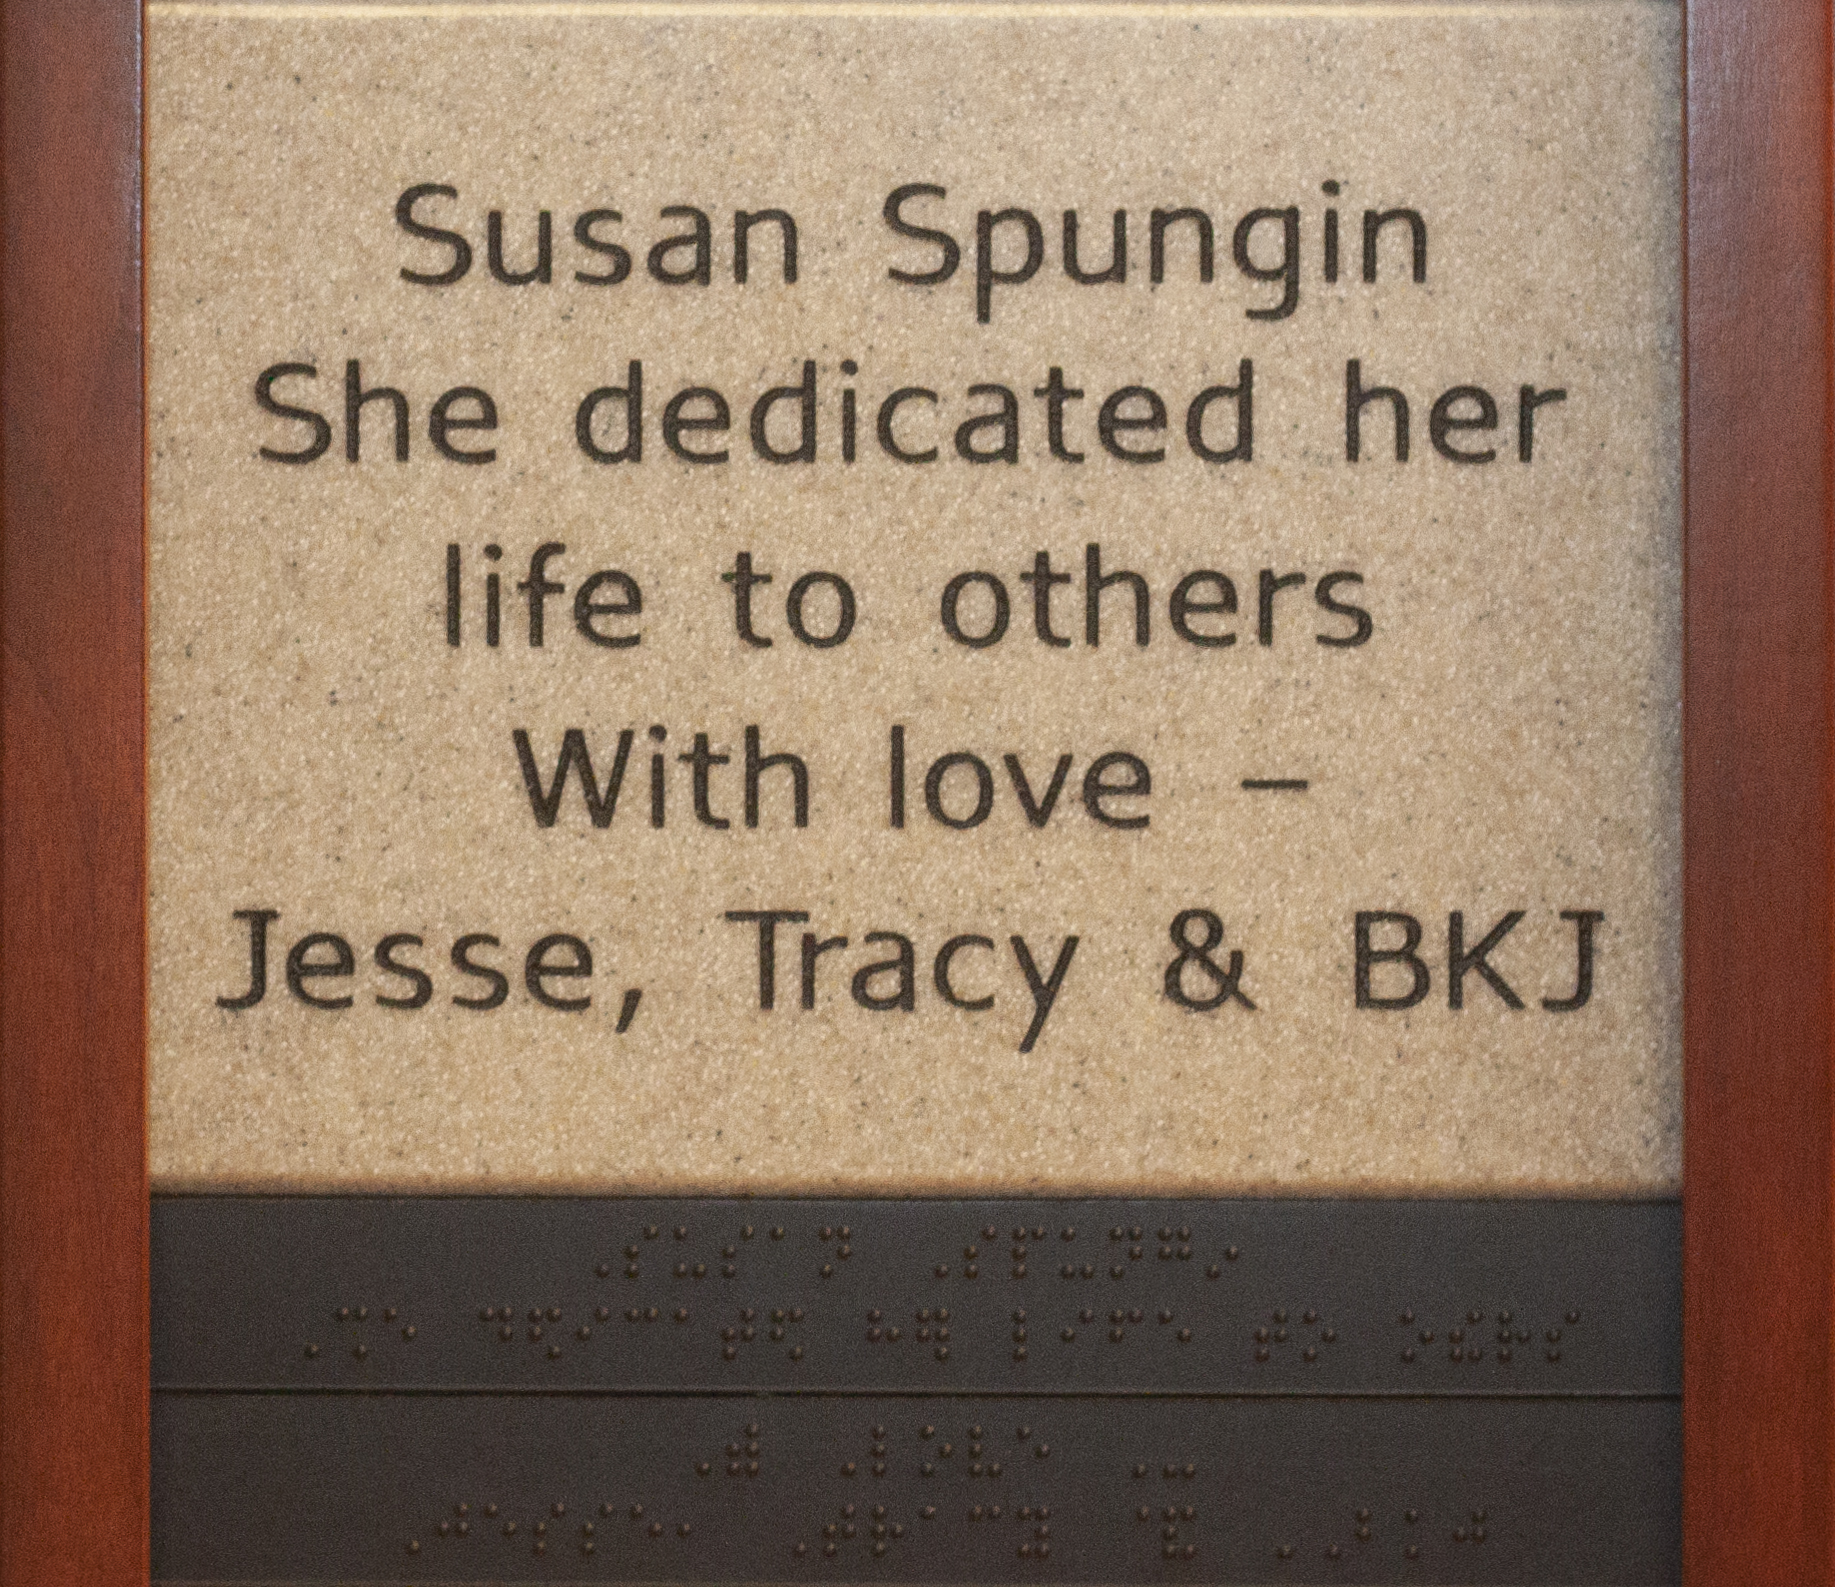 Susan Spungin, She dedicated her life to others, With love – Jesse, Tracy & BKJ